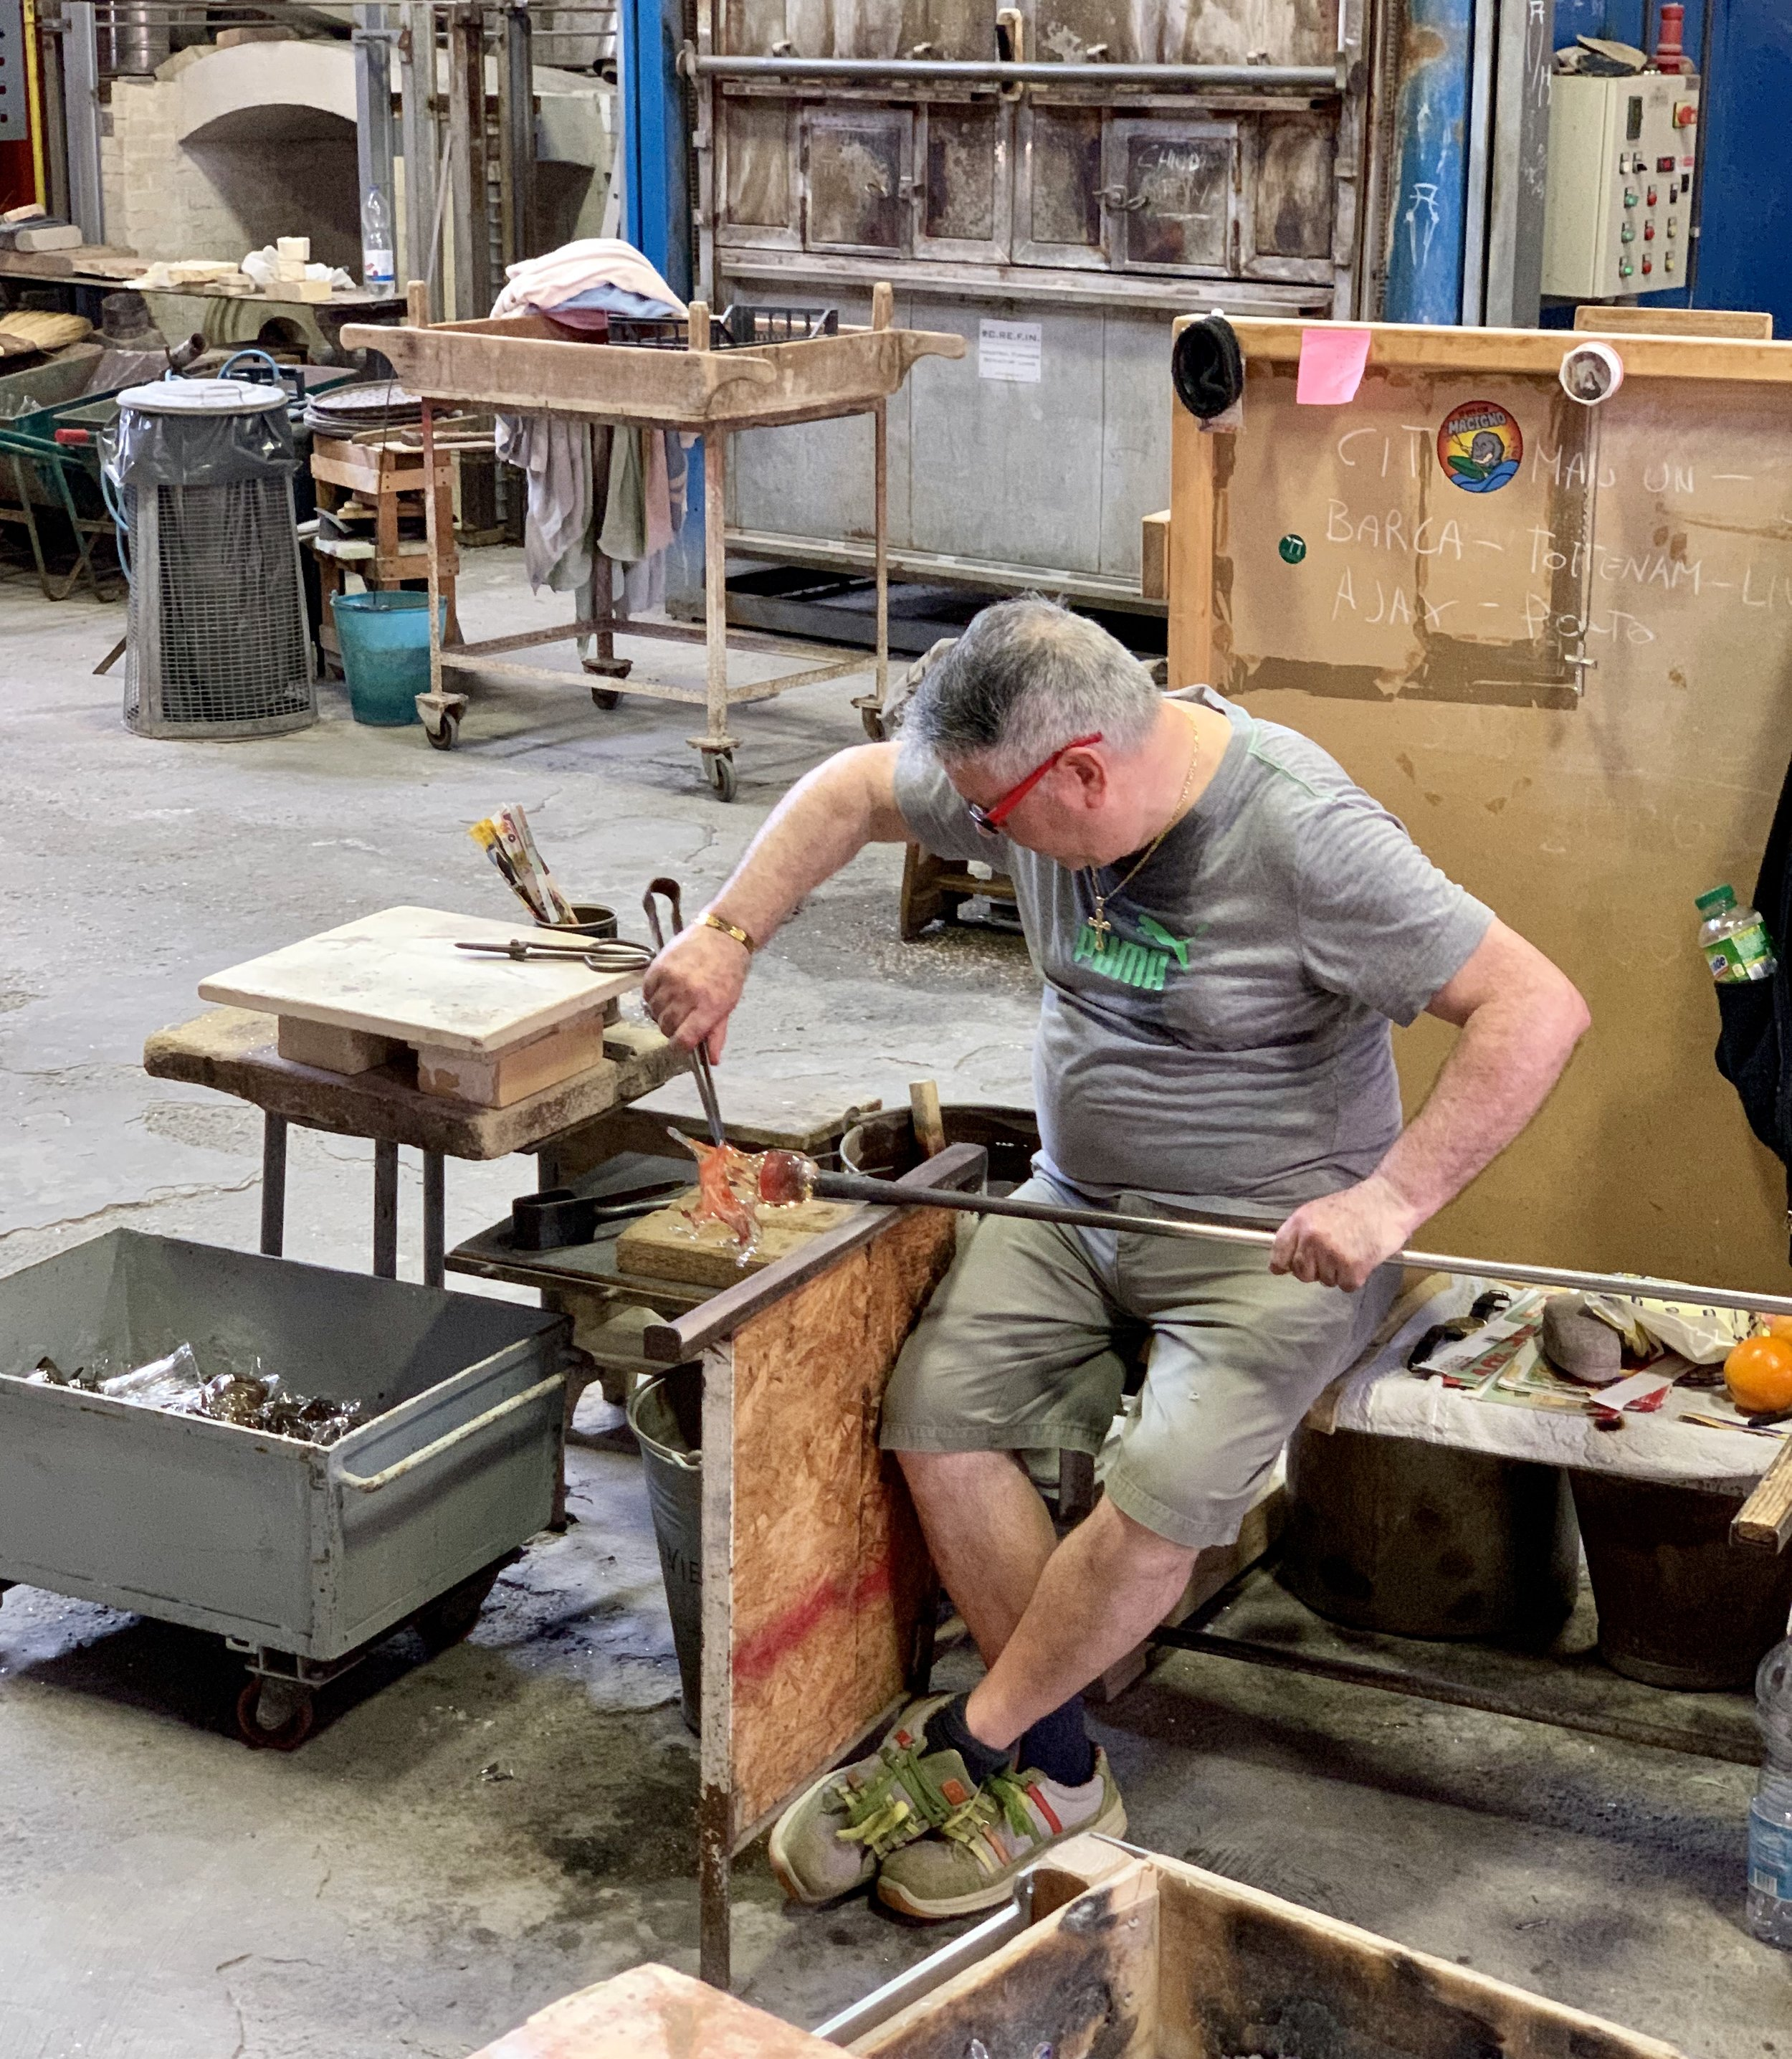 Glass blowing demonstration in Murano.